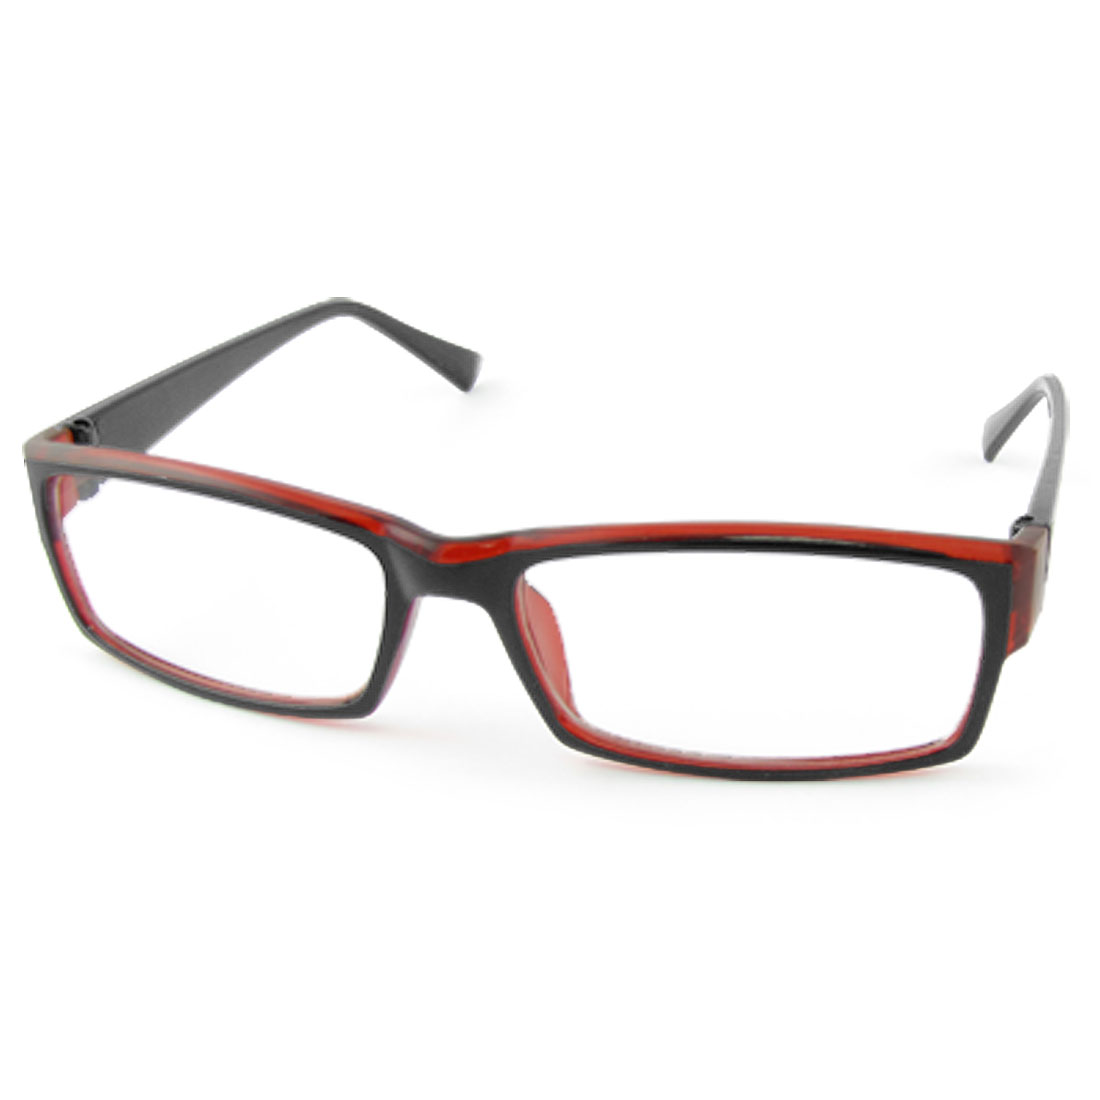 Unisex Wine Red Blk Frame Rectanlge Clear Lens Eyewear